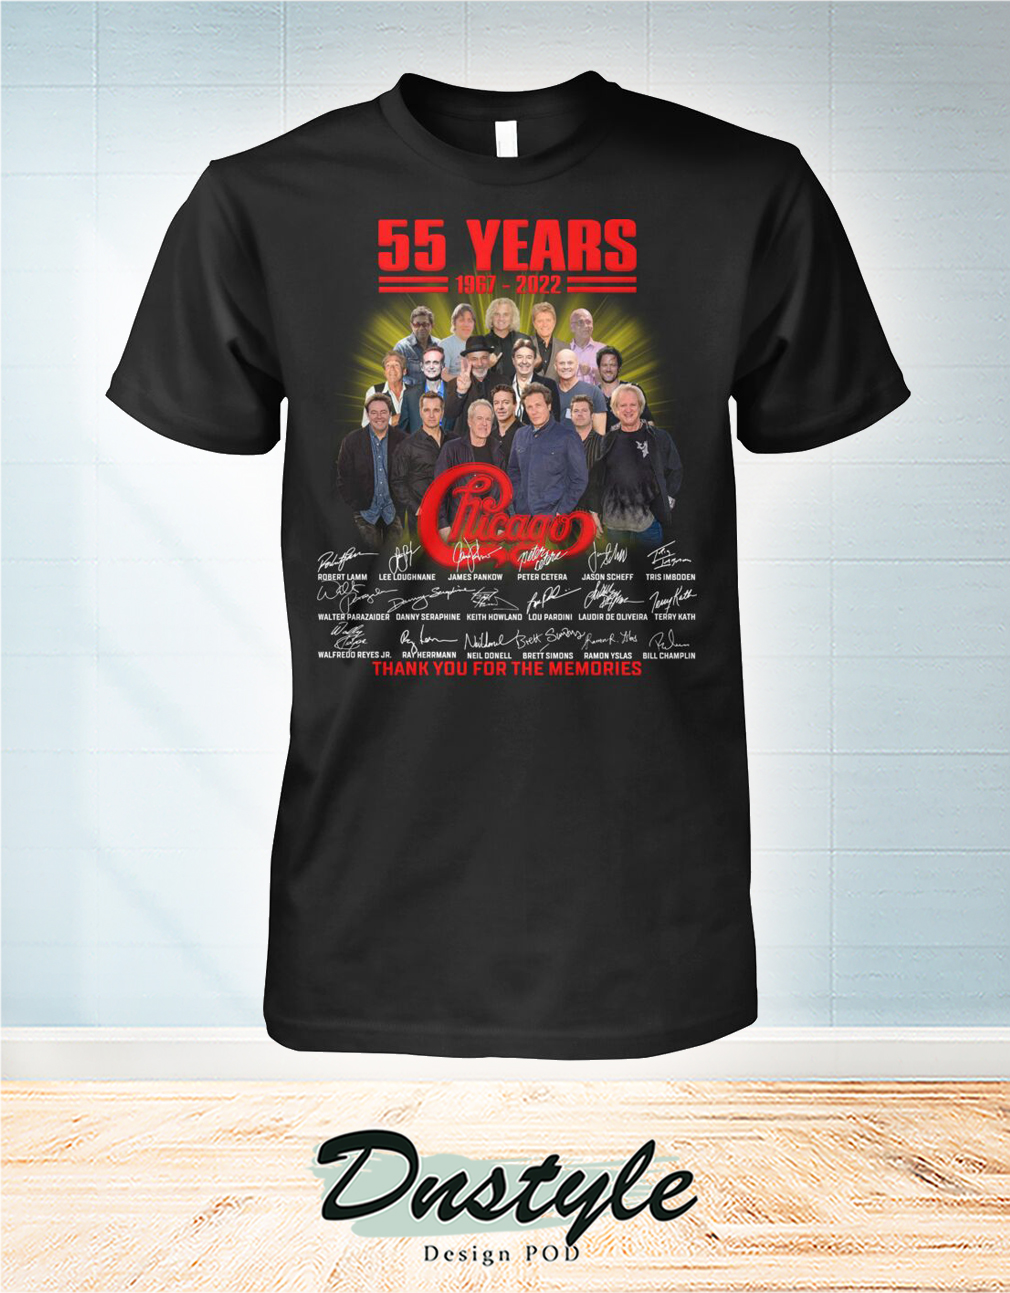 55 years 1987 2022 chicago signature thank you for the memories shirt